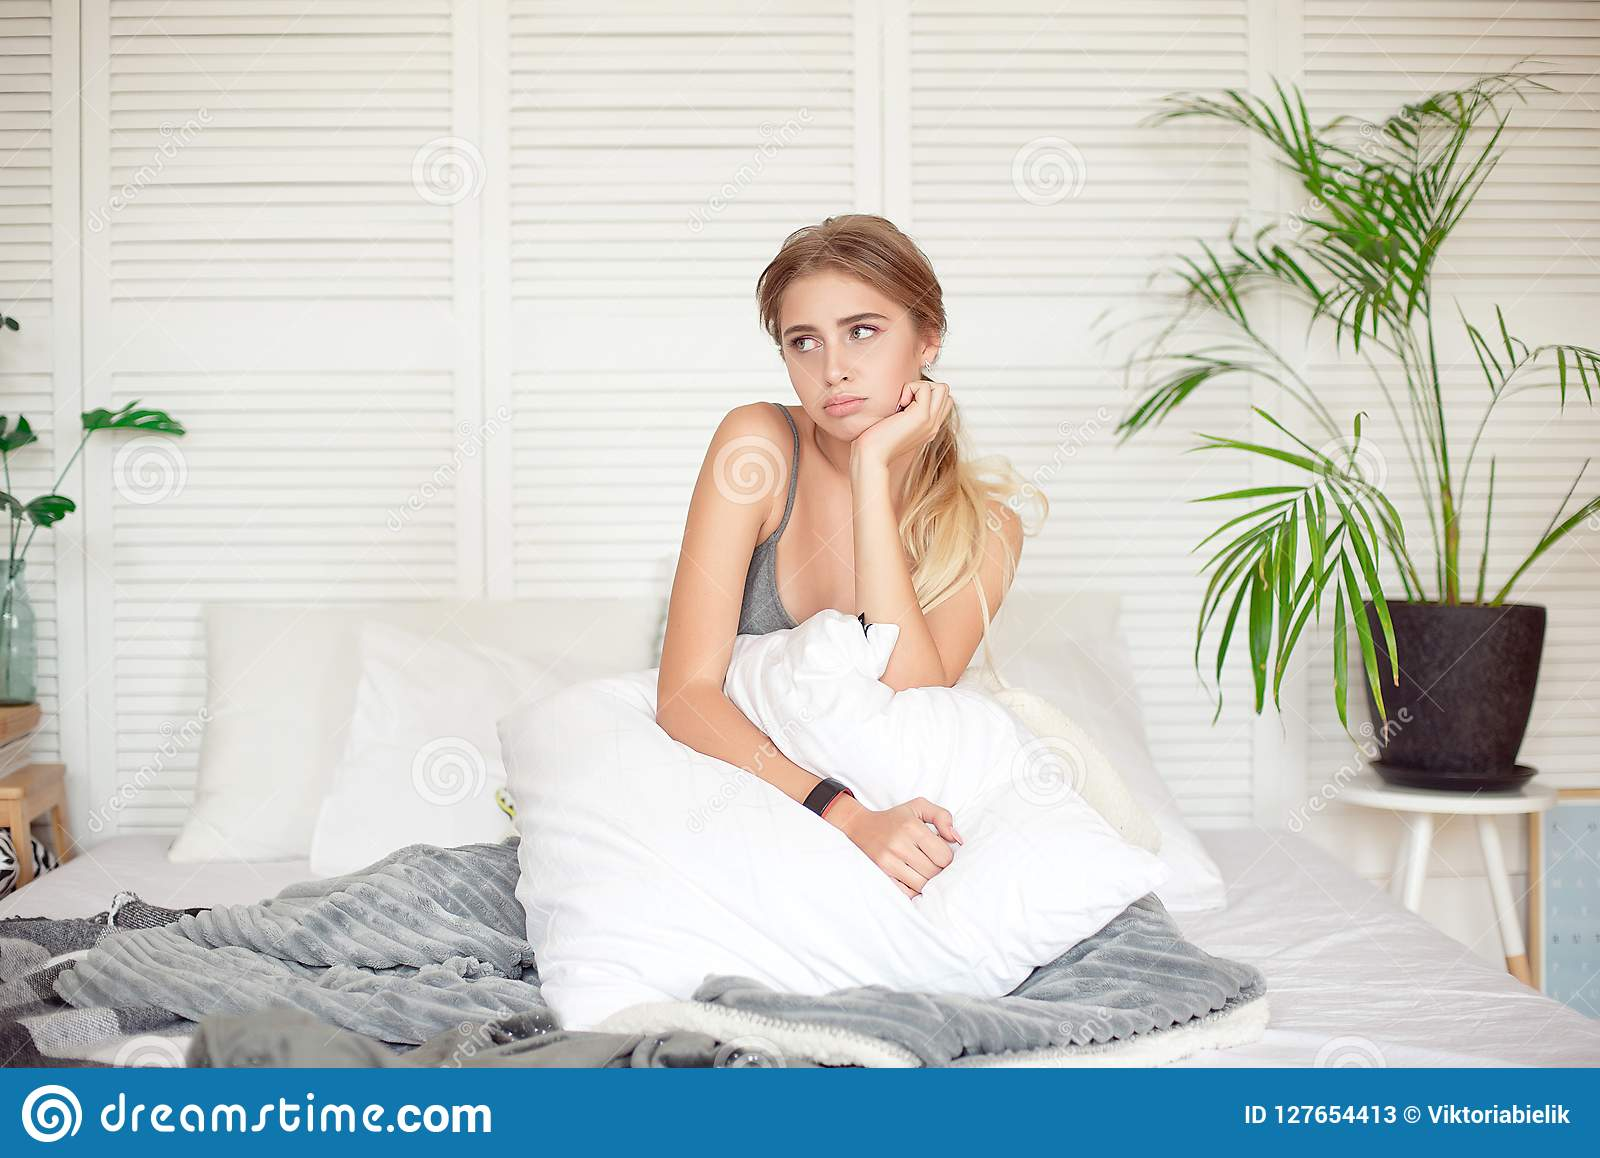 Caucasian sleepy young attractive woman feeling drowsy after woke up, sits on the bed having bad mood after sleepless